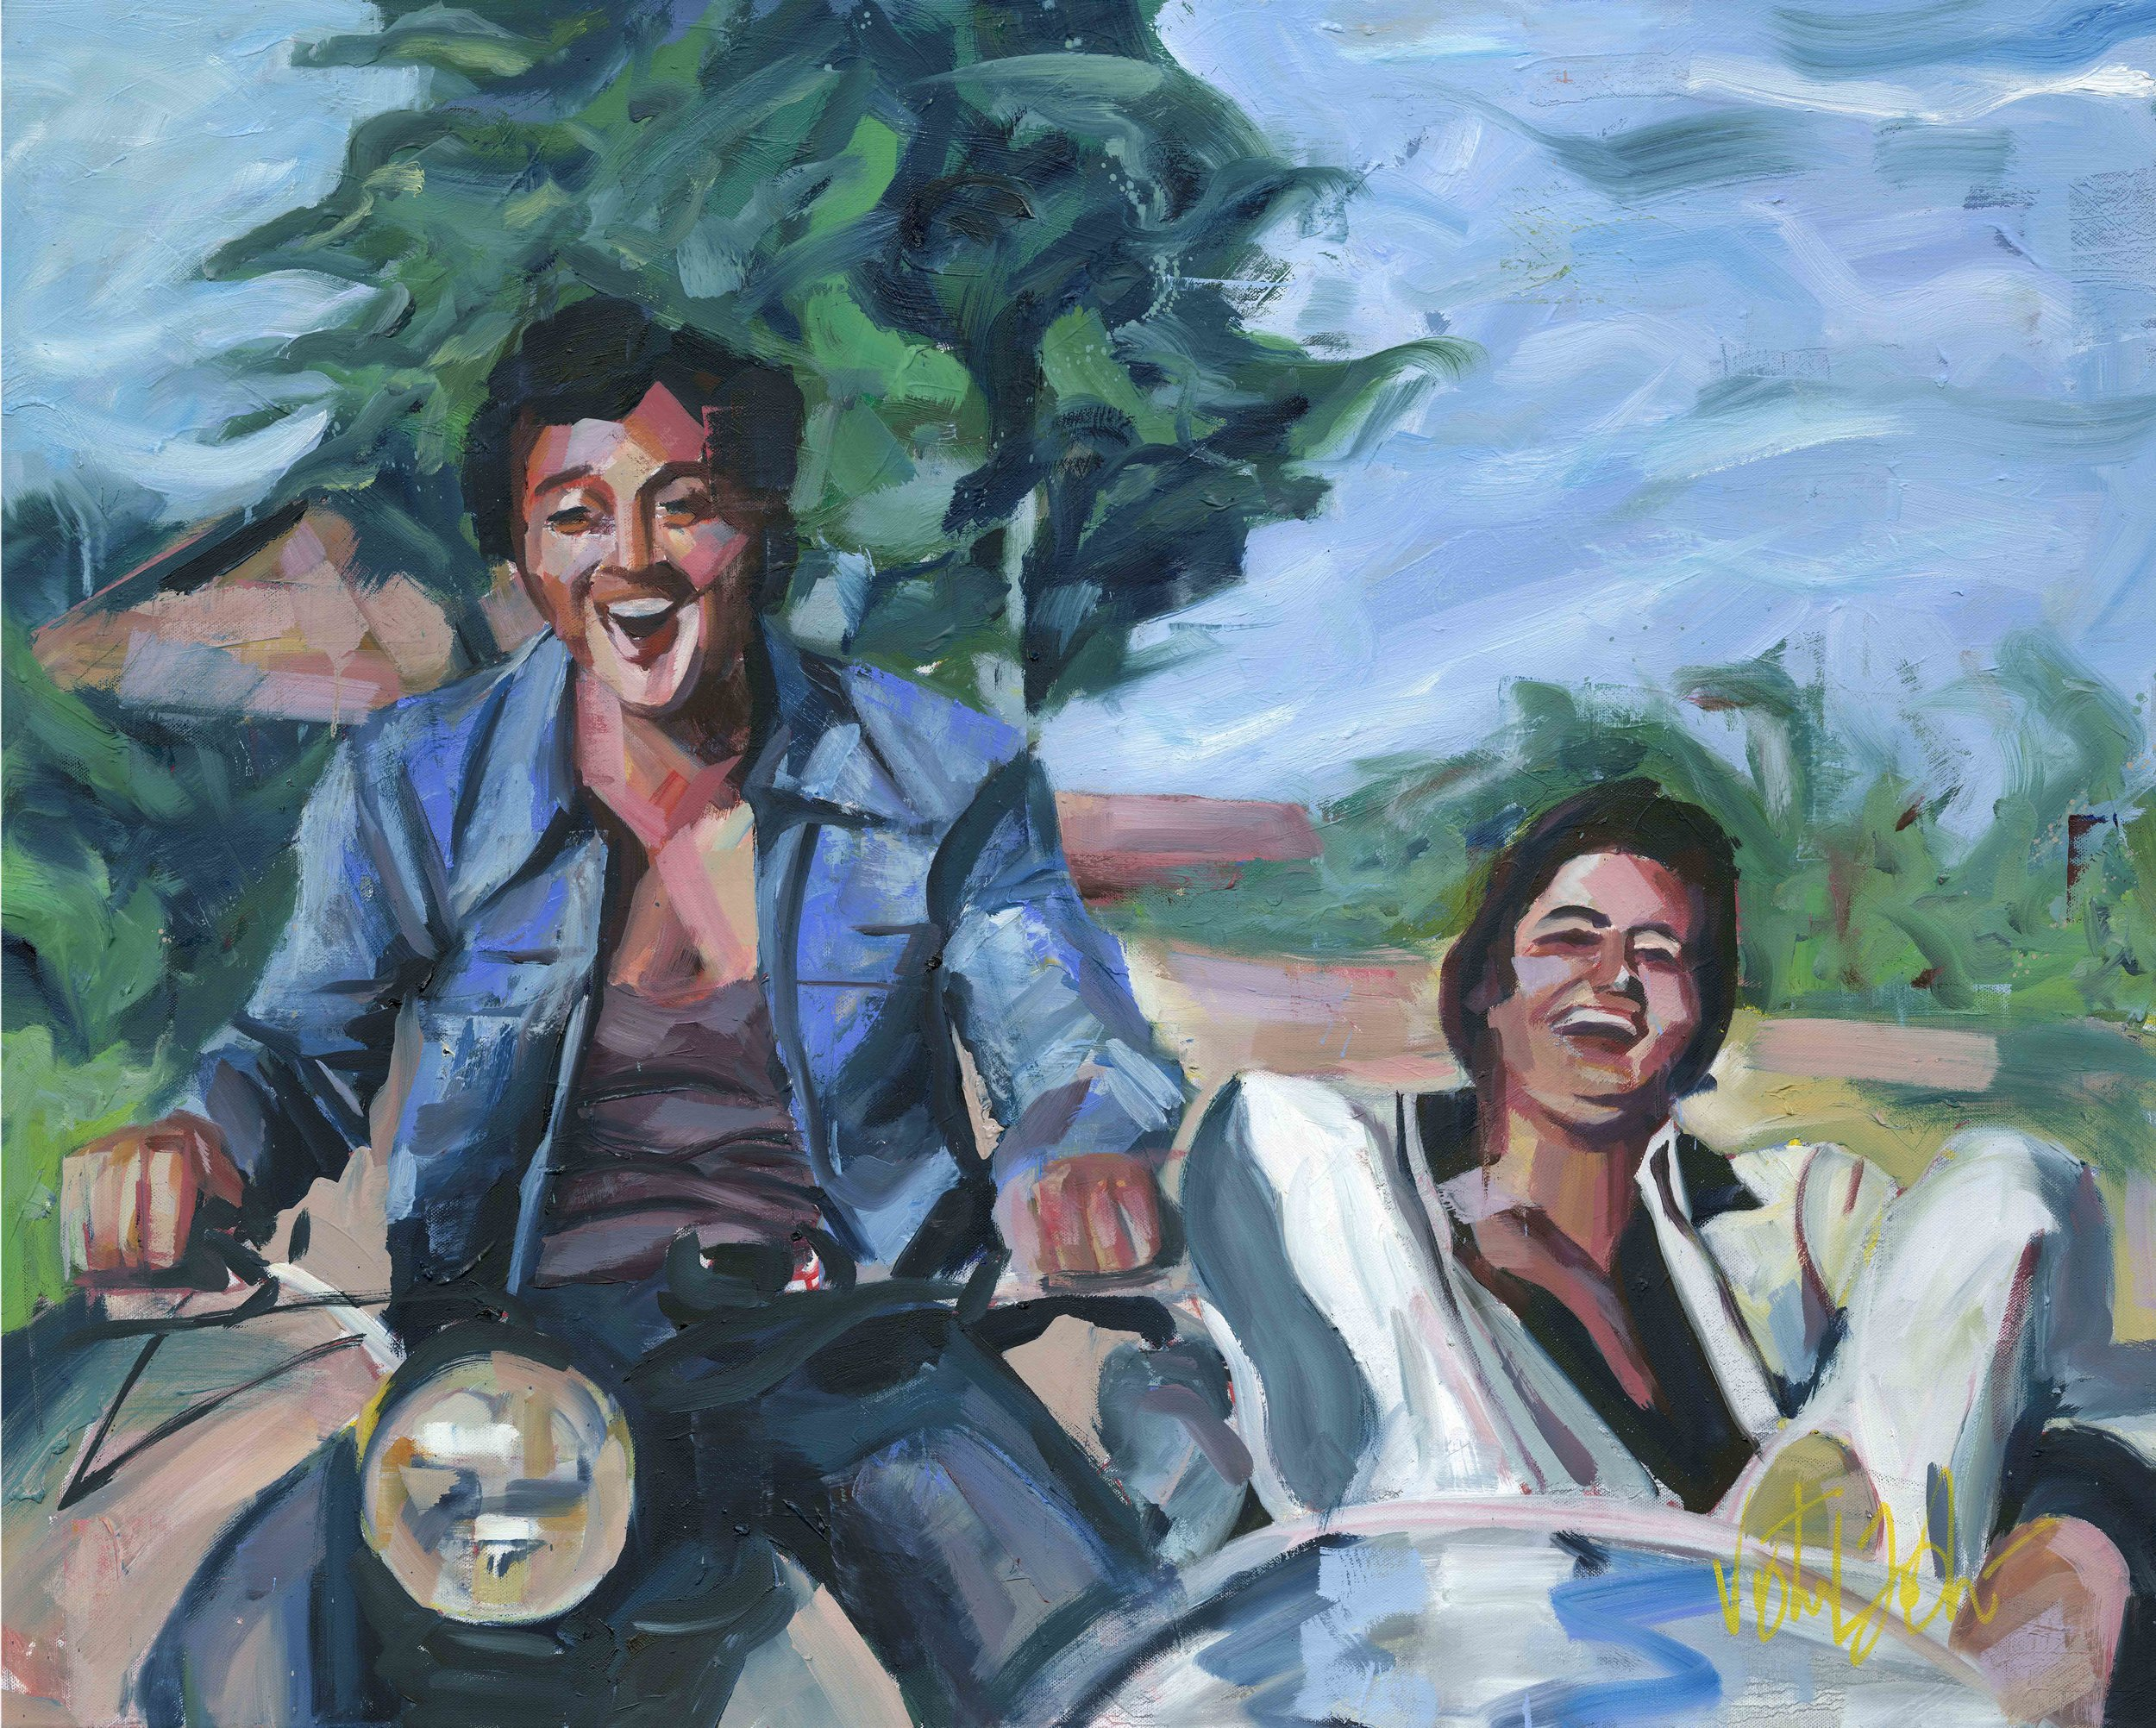 Yeh Dosti - A painting 'still' from a song about the unique bond of friendship;from the epic movie Sholay.